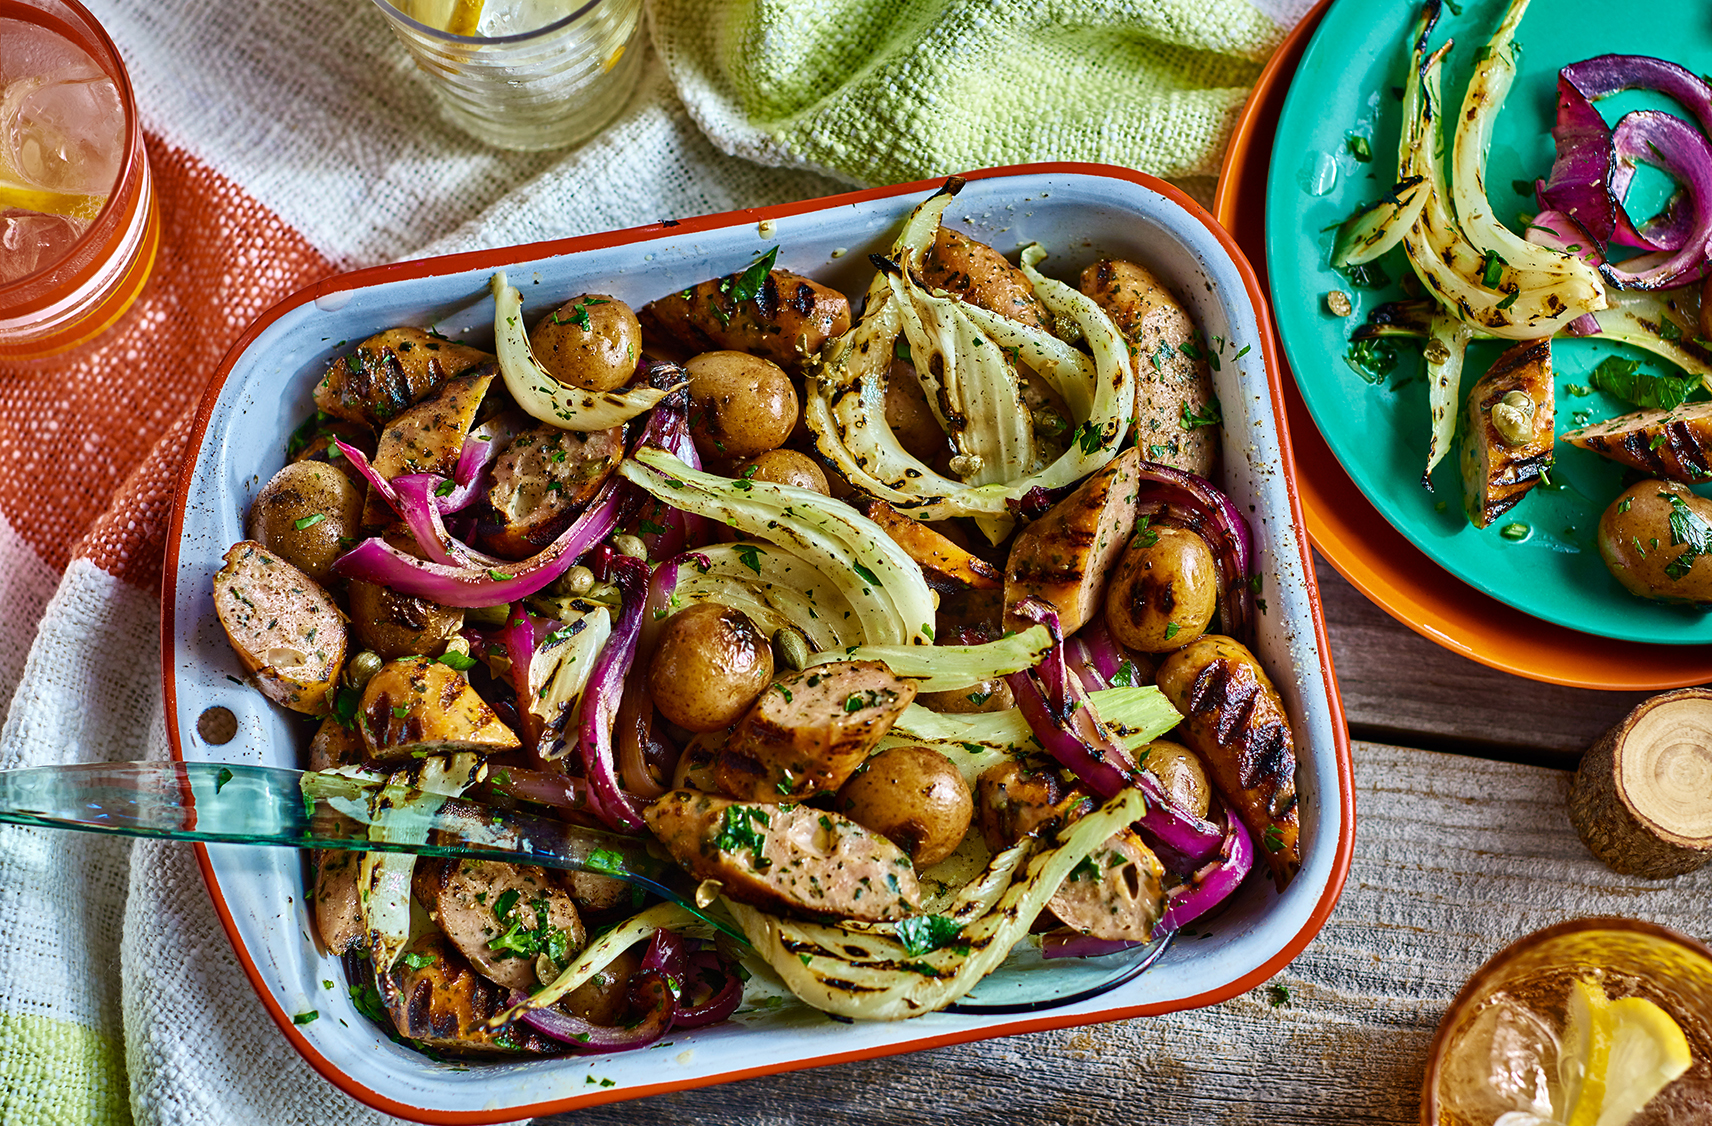 A platter of grilled sausage and potato salad with fennel and onions